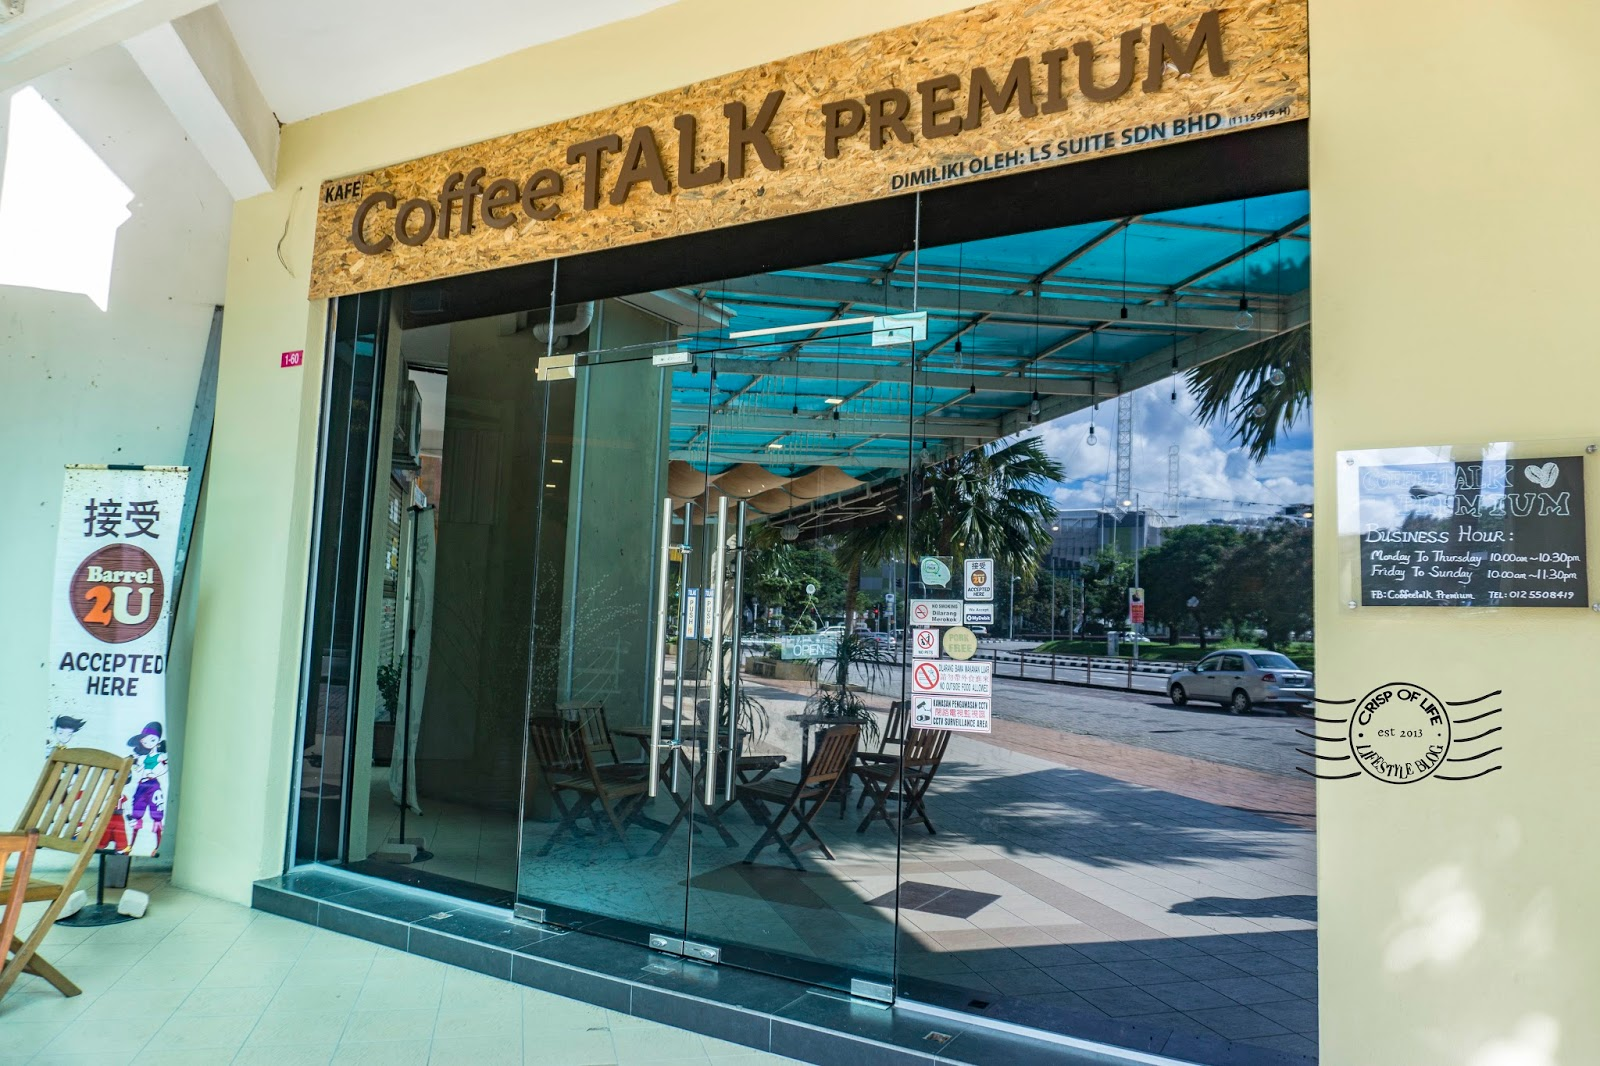 Cafe in Penang Coffe Talk Premium D'Piazza Mall Bayan Baru